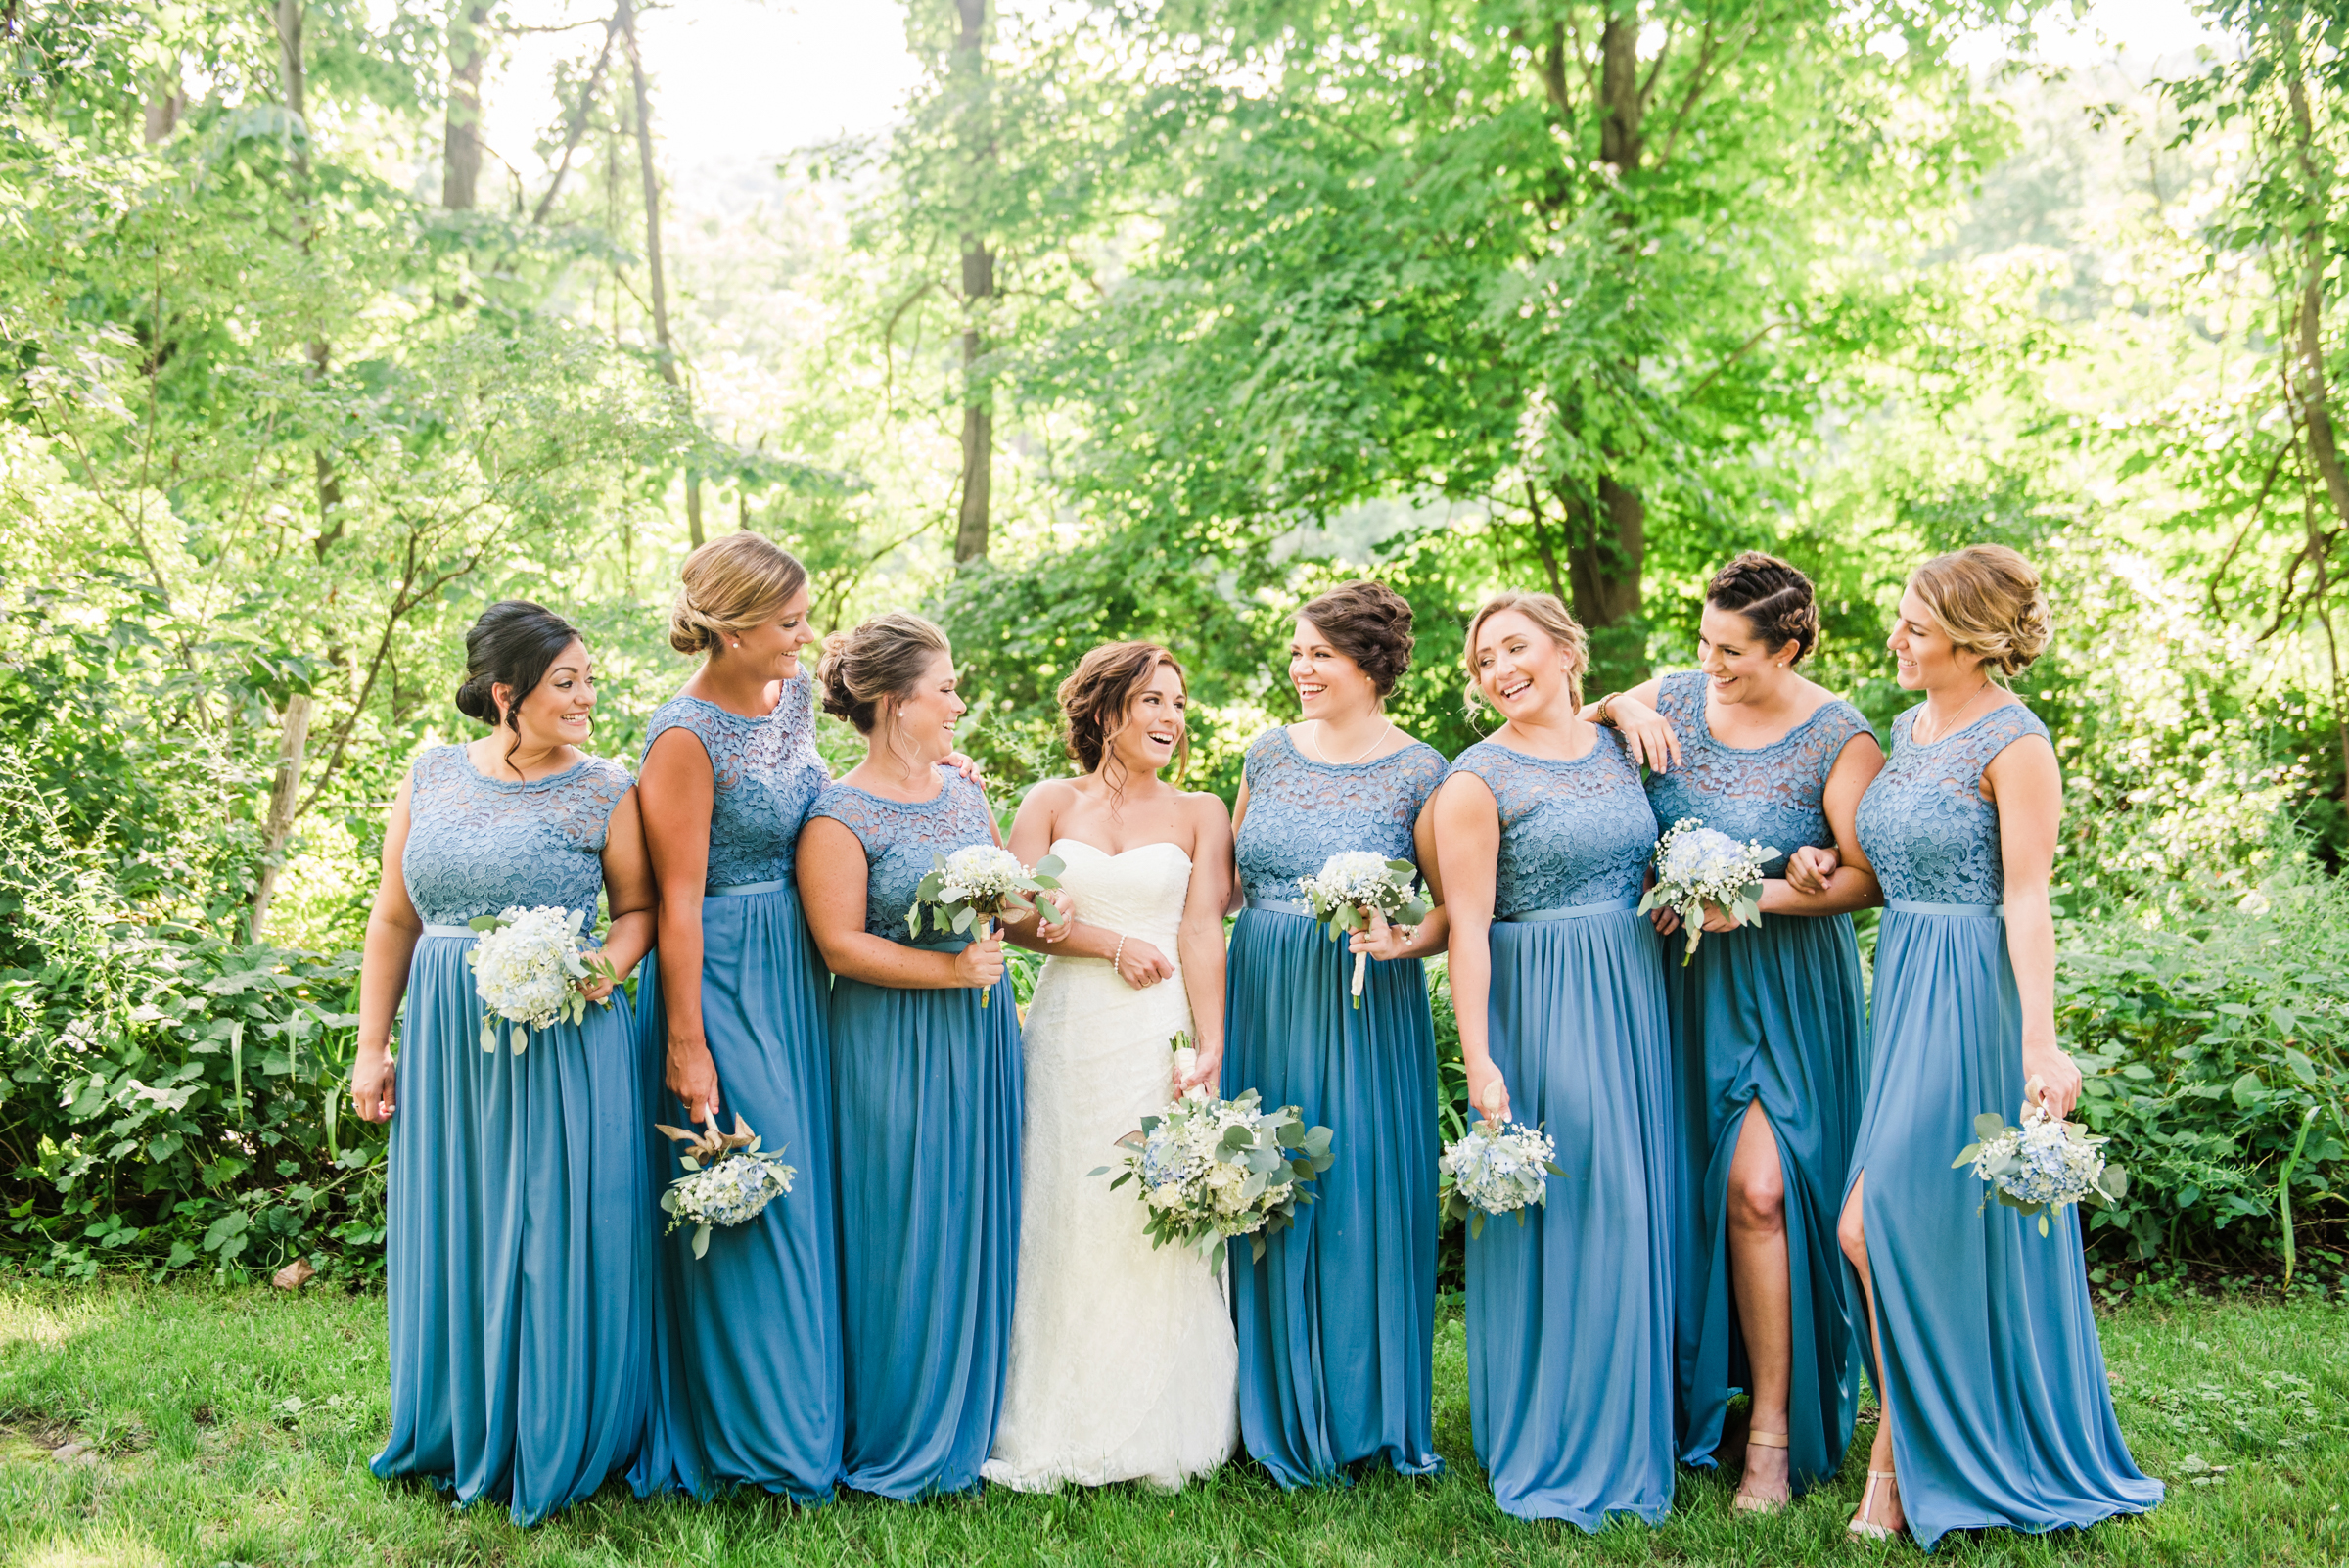 JILL_STUDIO_Wedding_JILL_STUDIO_Rochester_NY_Photographer_16-DSC_4967.jpg